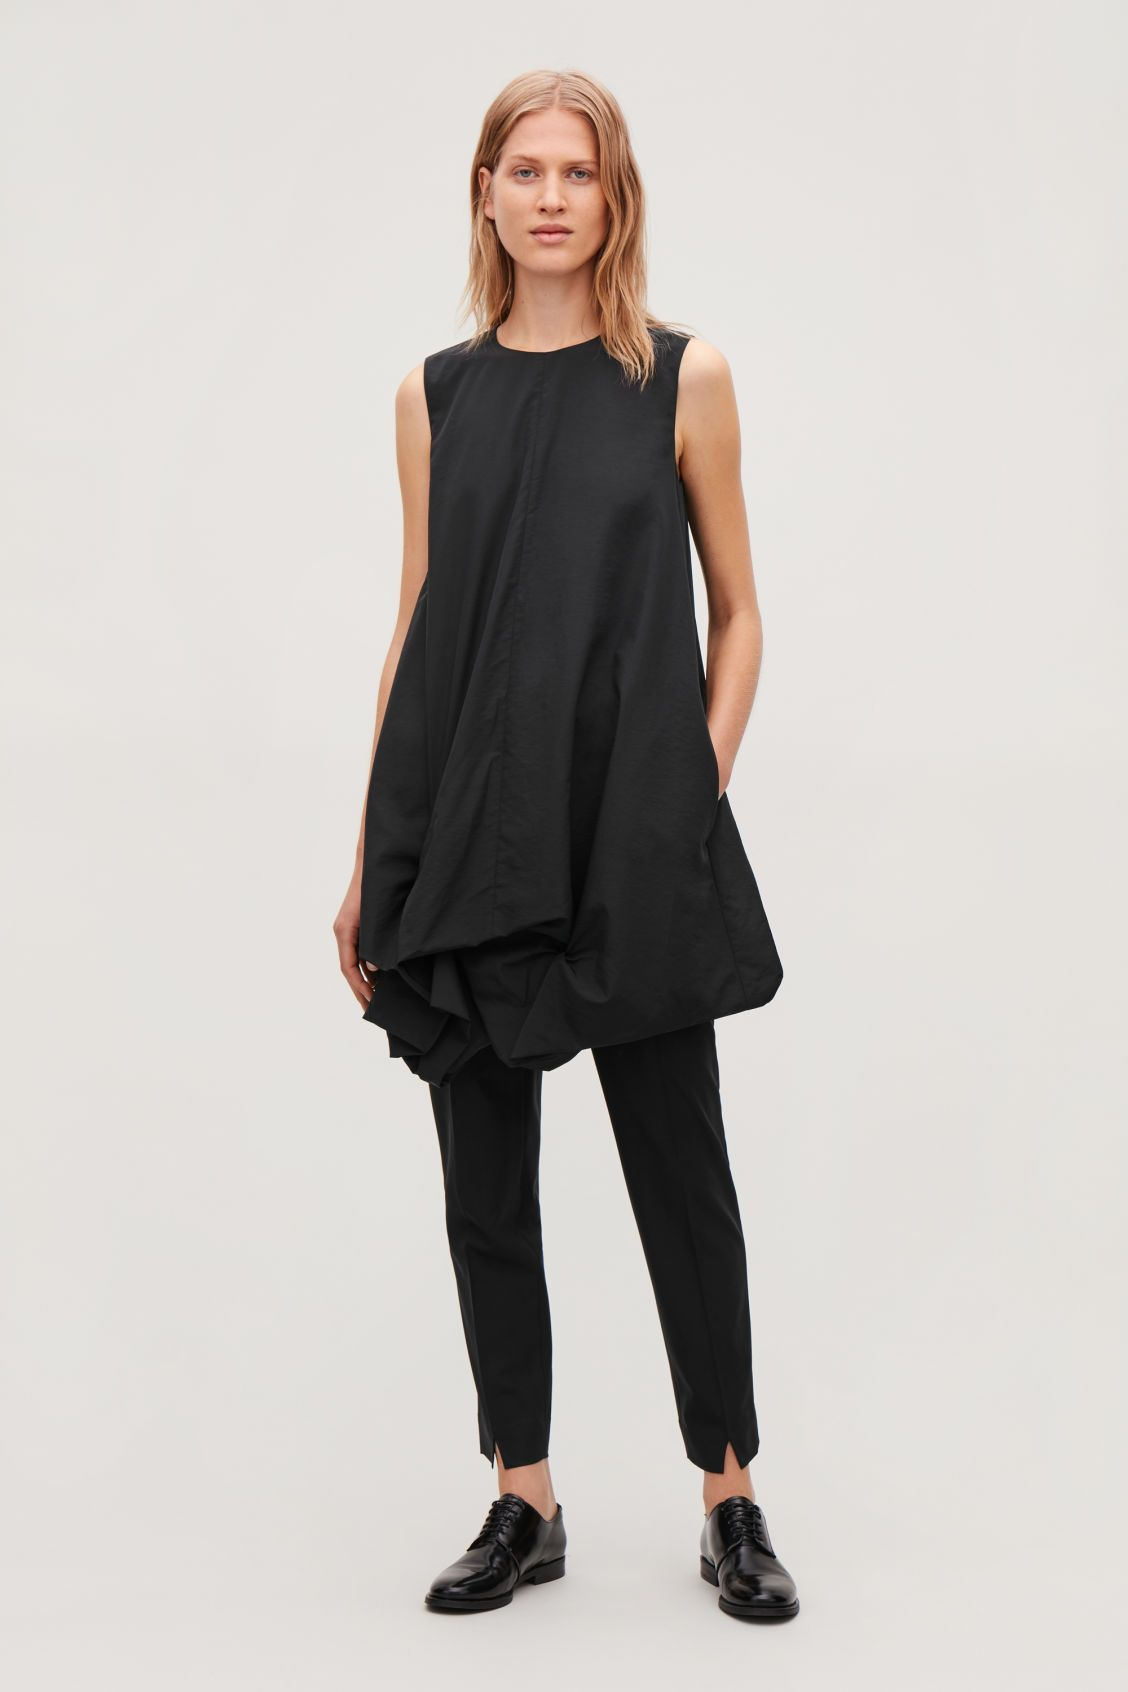 e8e7d235c9b7 GATHERED-HEM SLEEVELESS DRESS - Black - Dresses - COS | FALL/WINTER ...